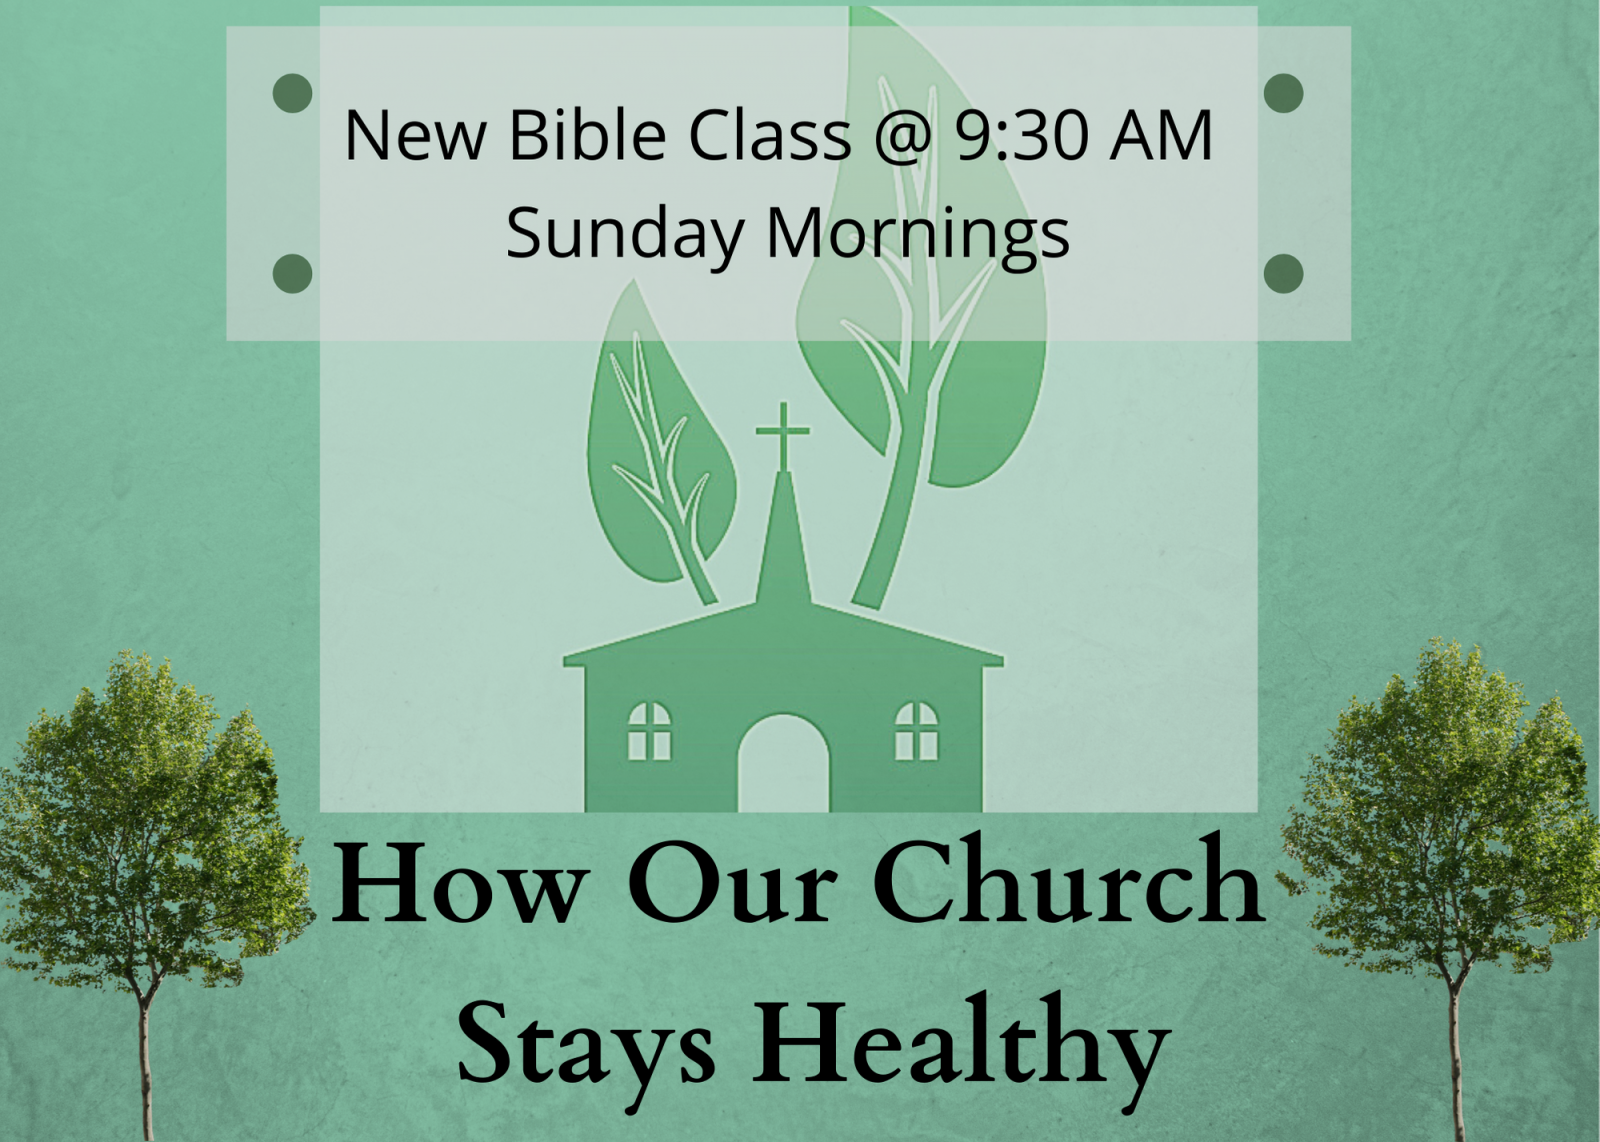 How Our Church Stays Healthy